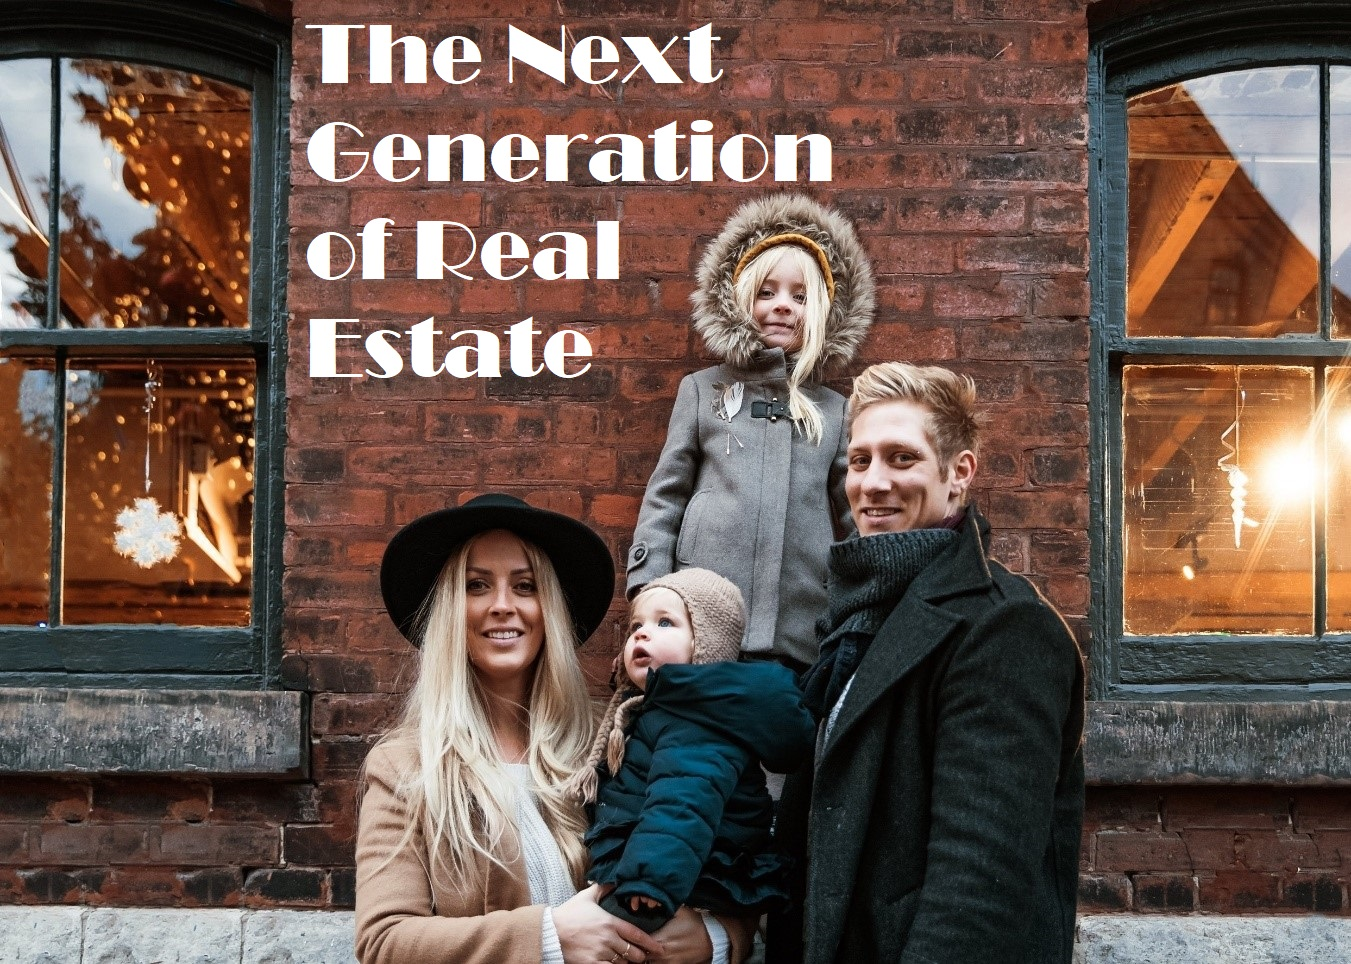 The Millennial Market: The Next Generation of Real Estate